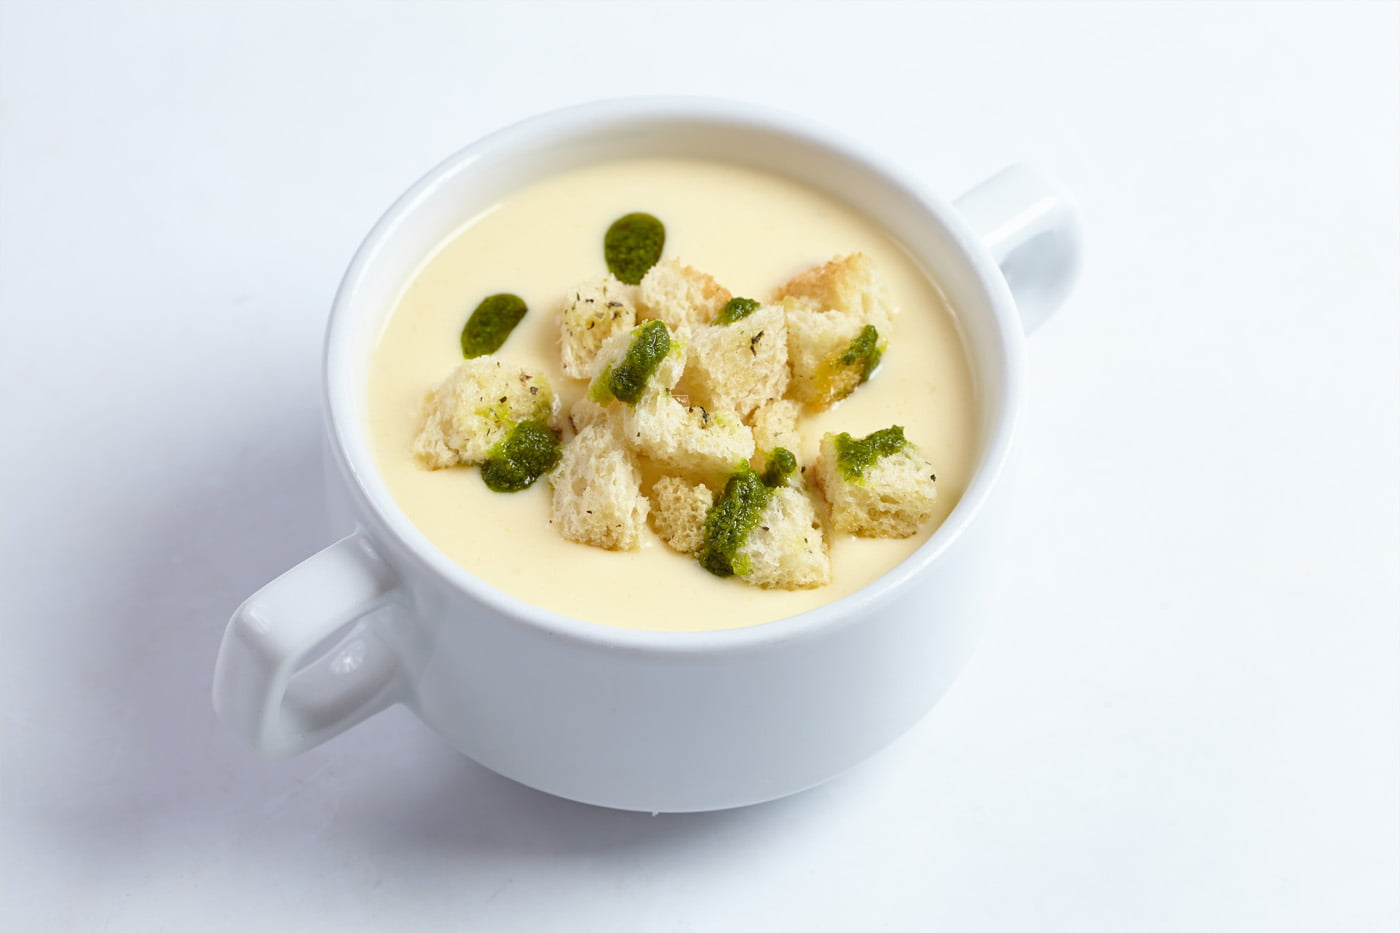 Delicious Dairy Free Parsnip & Lemon Soup